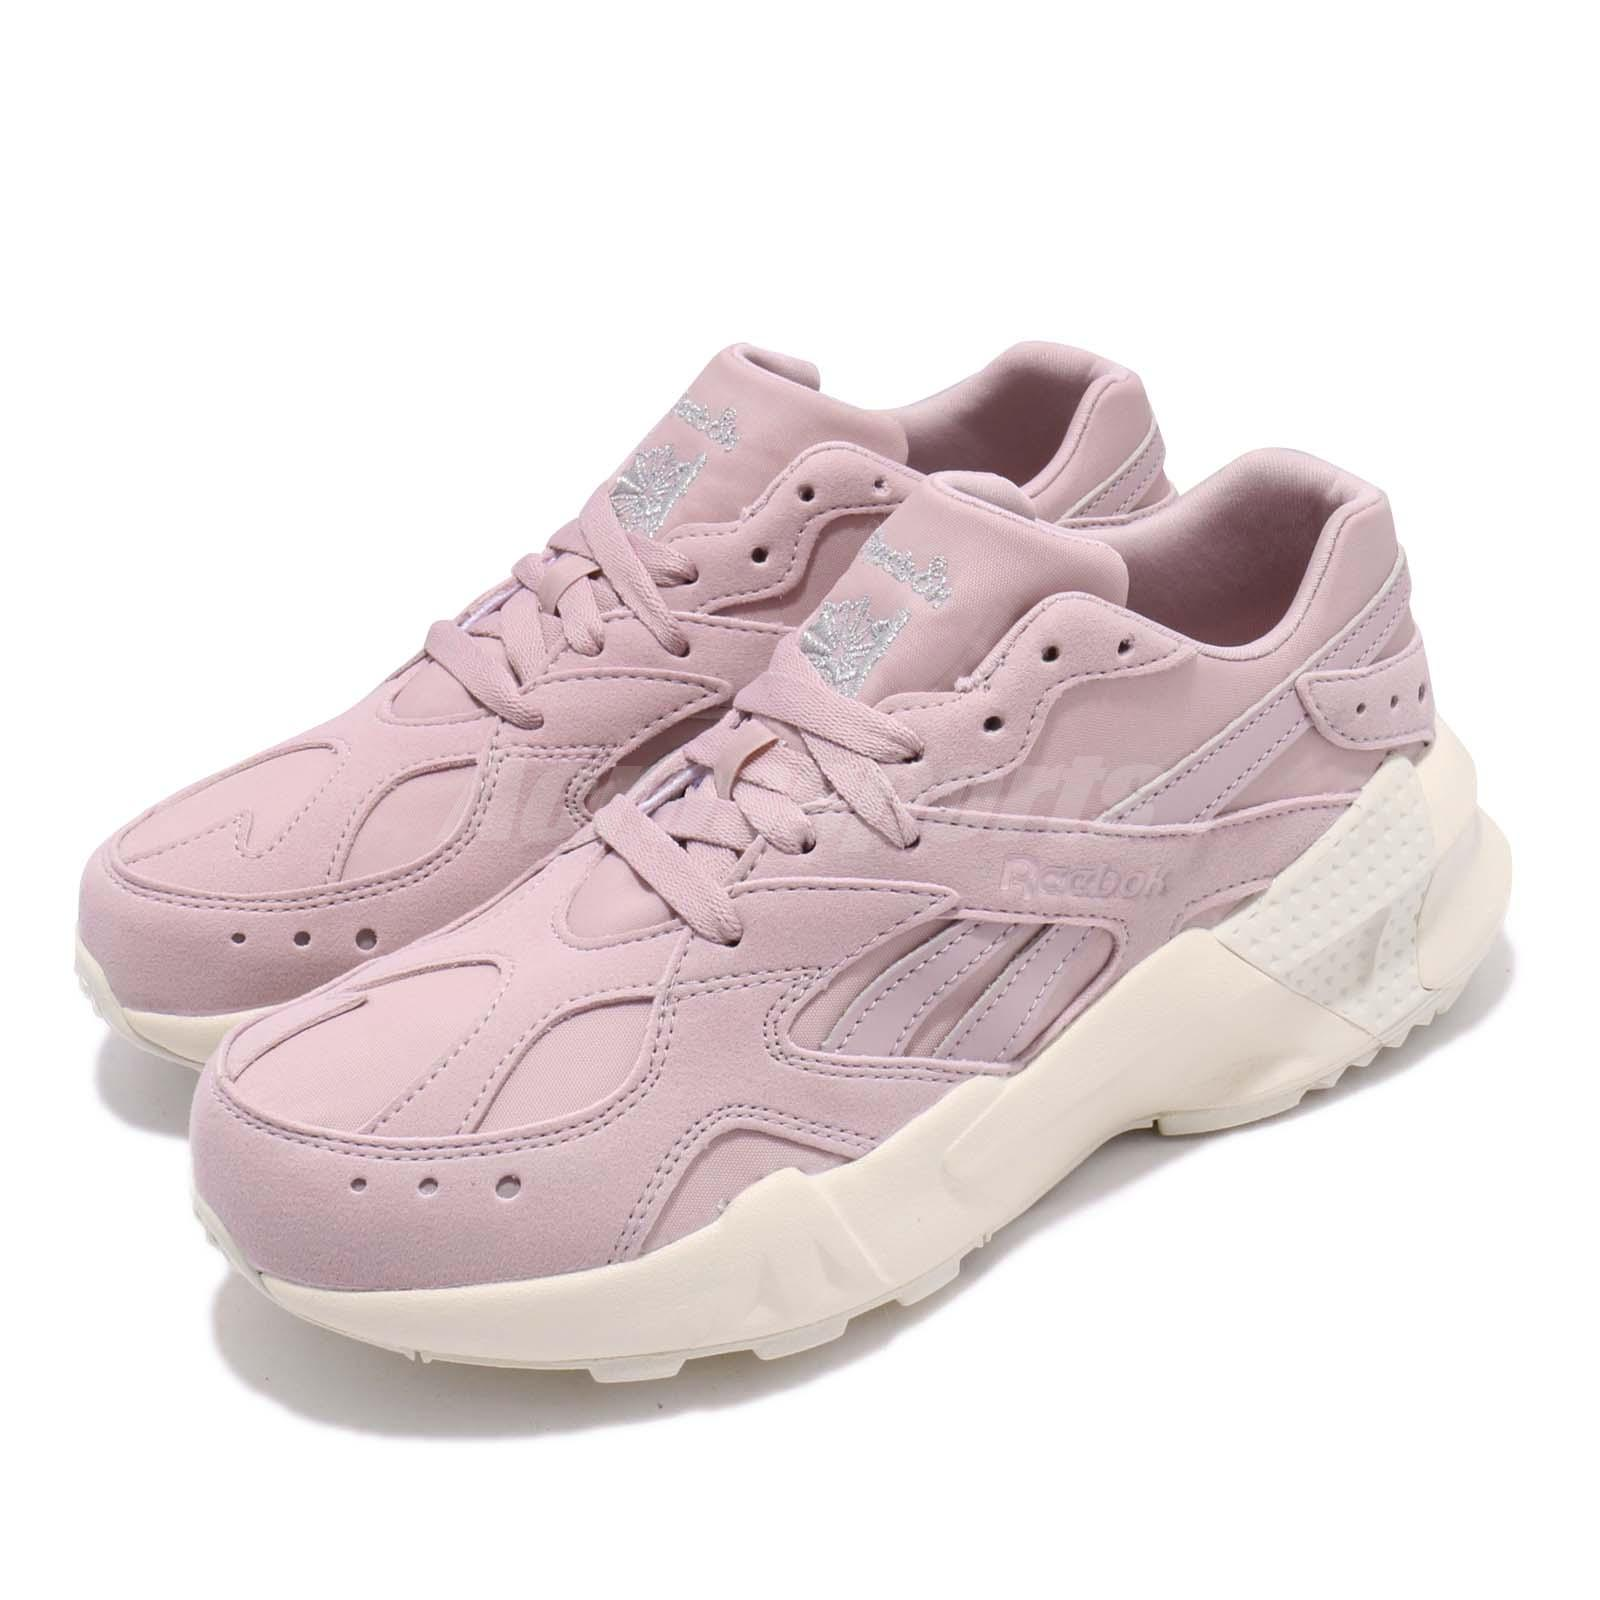 a1ee9d826f Details about Reebok AZTREK Double 93 Ashen Lilac Paper White Men Women  Chunky Shoes DV6309